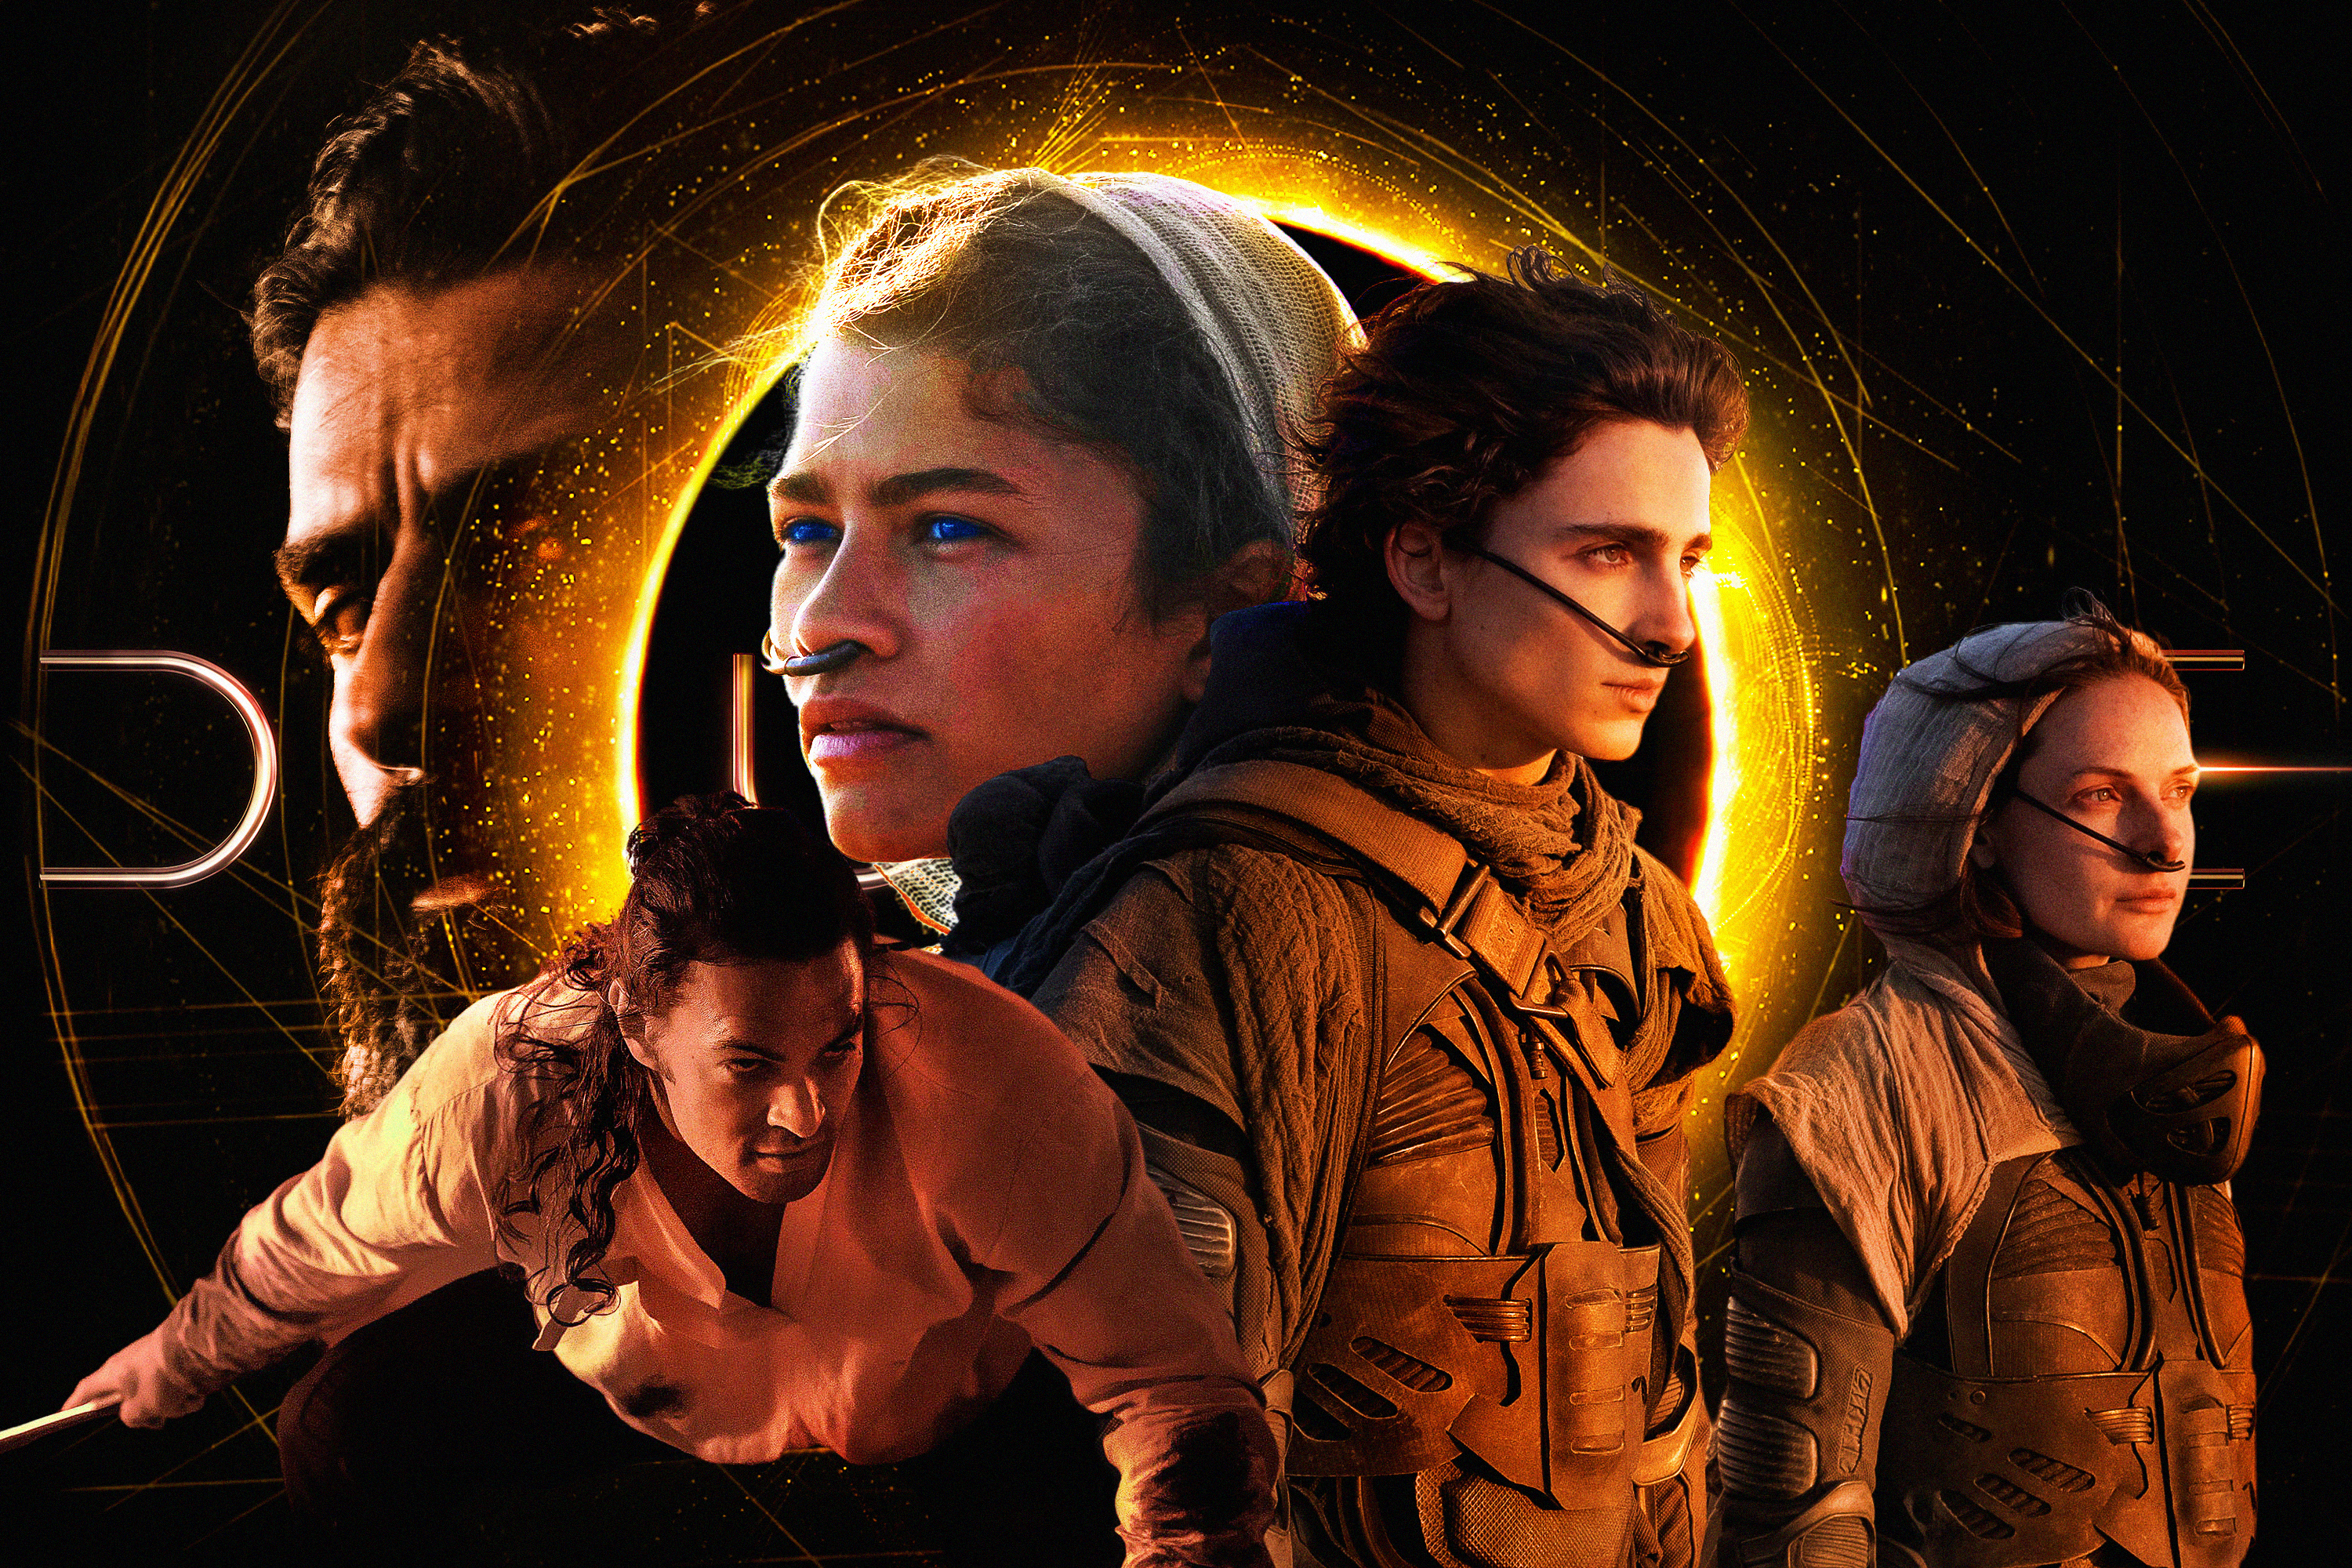 Photo illustration featuring a montage of the main characters from the Movie DUNE on a dark background and a glowing planet